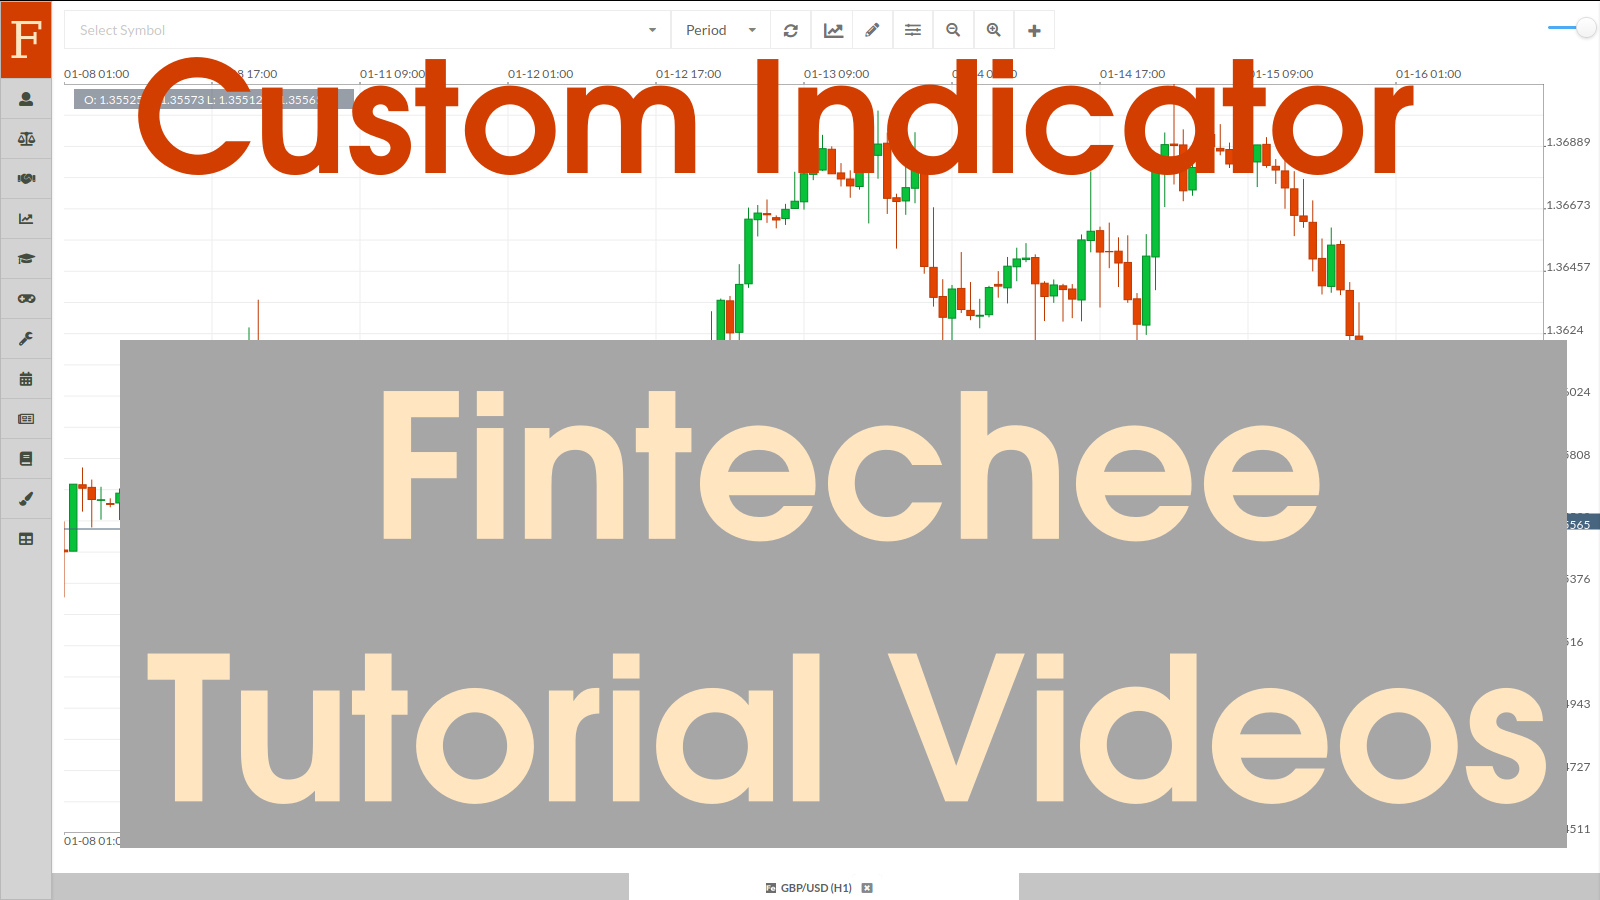 Custom Indicator, Custom Forex Indicators are the topics of this tutorial for Forex trading. Let's learn custom indicator